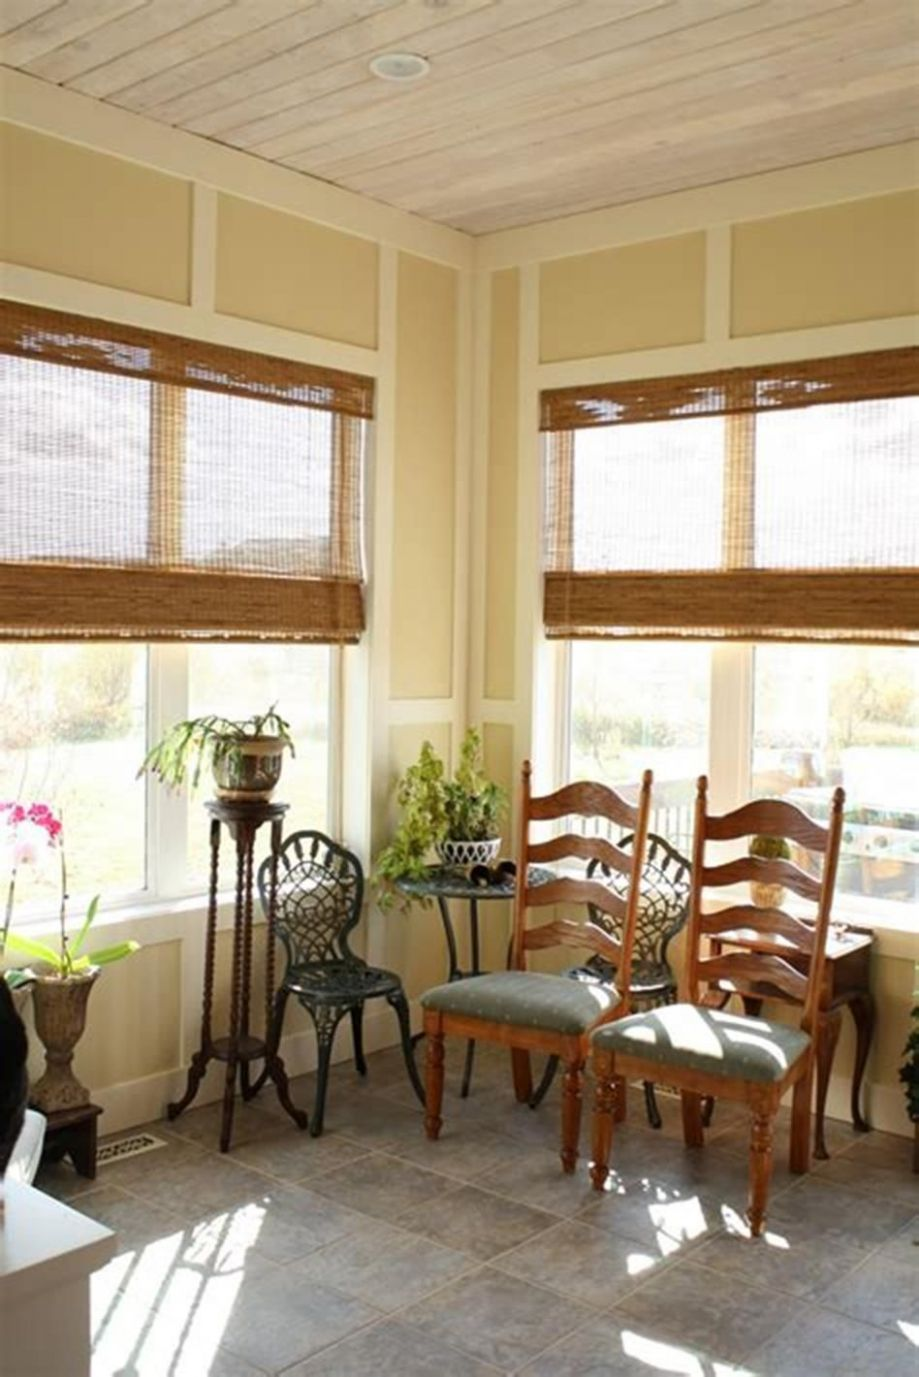 8 Most Popular Affordable Sunroom Design Ideas on a Budget ..